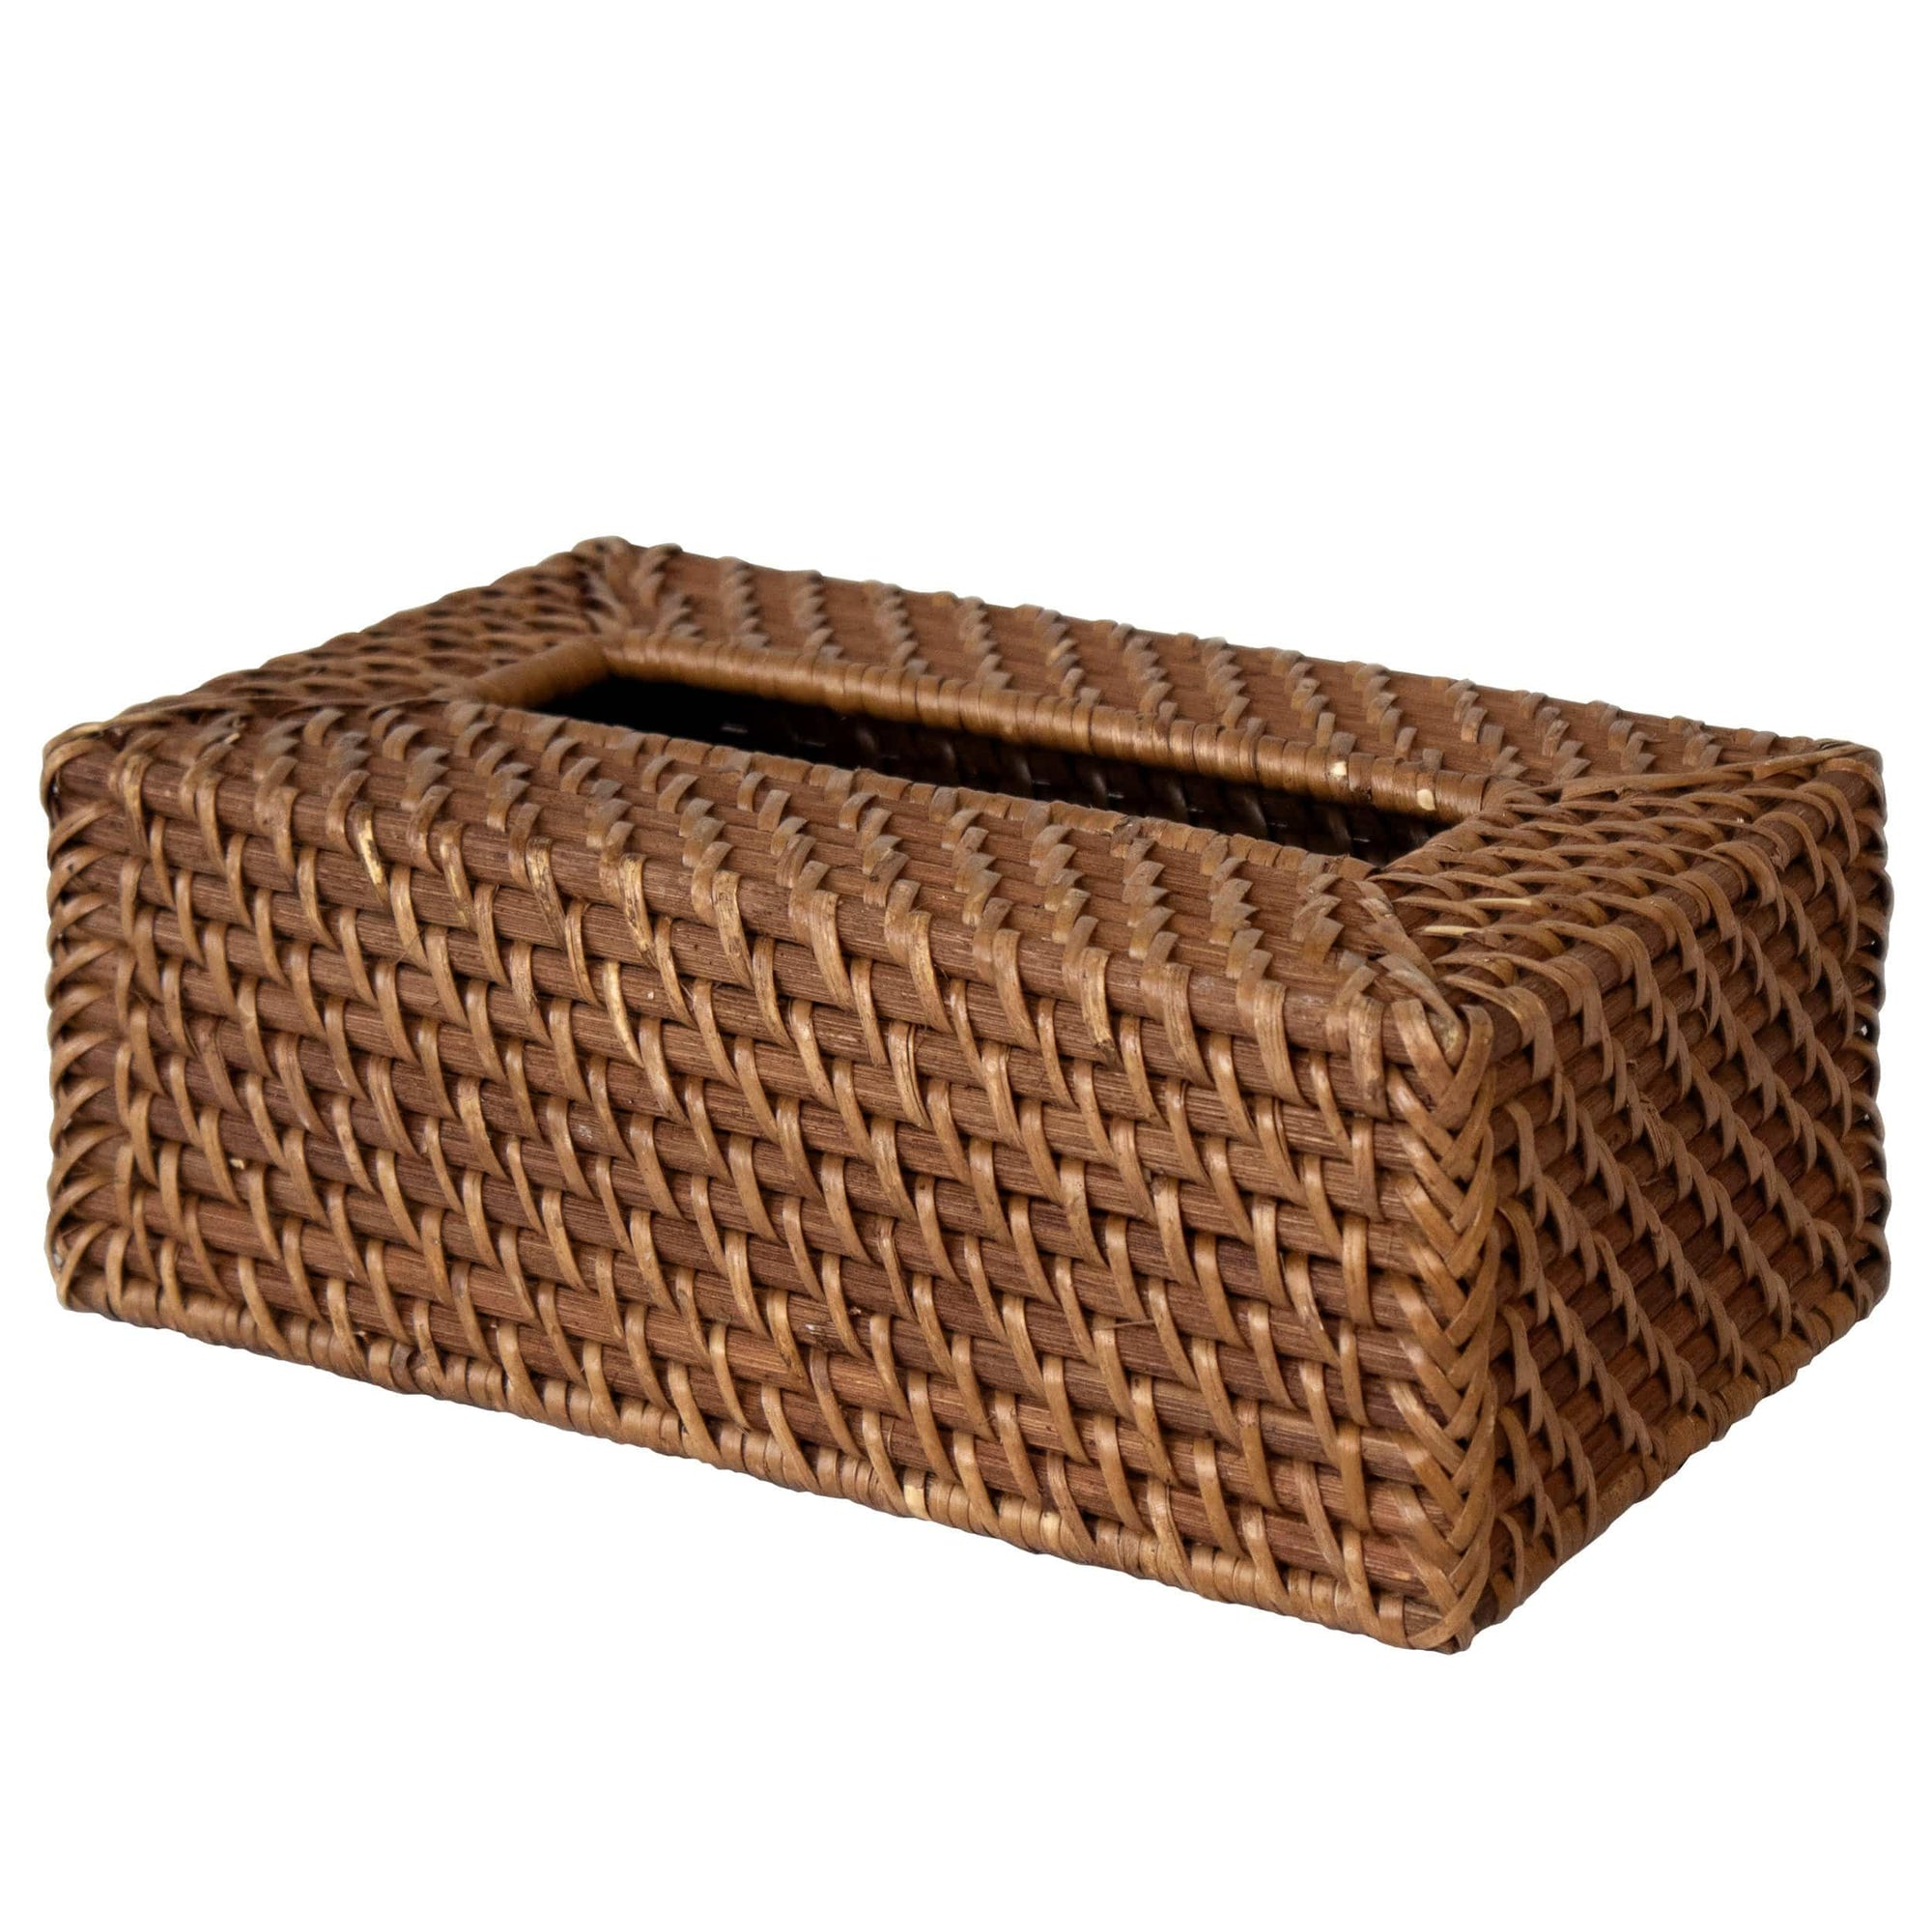 Made Terra Tissue Box Cover Brown Rectangular Rattan Tissue Box Cover | Handwoven Wicker Napkin Paper Dispenser